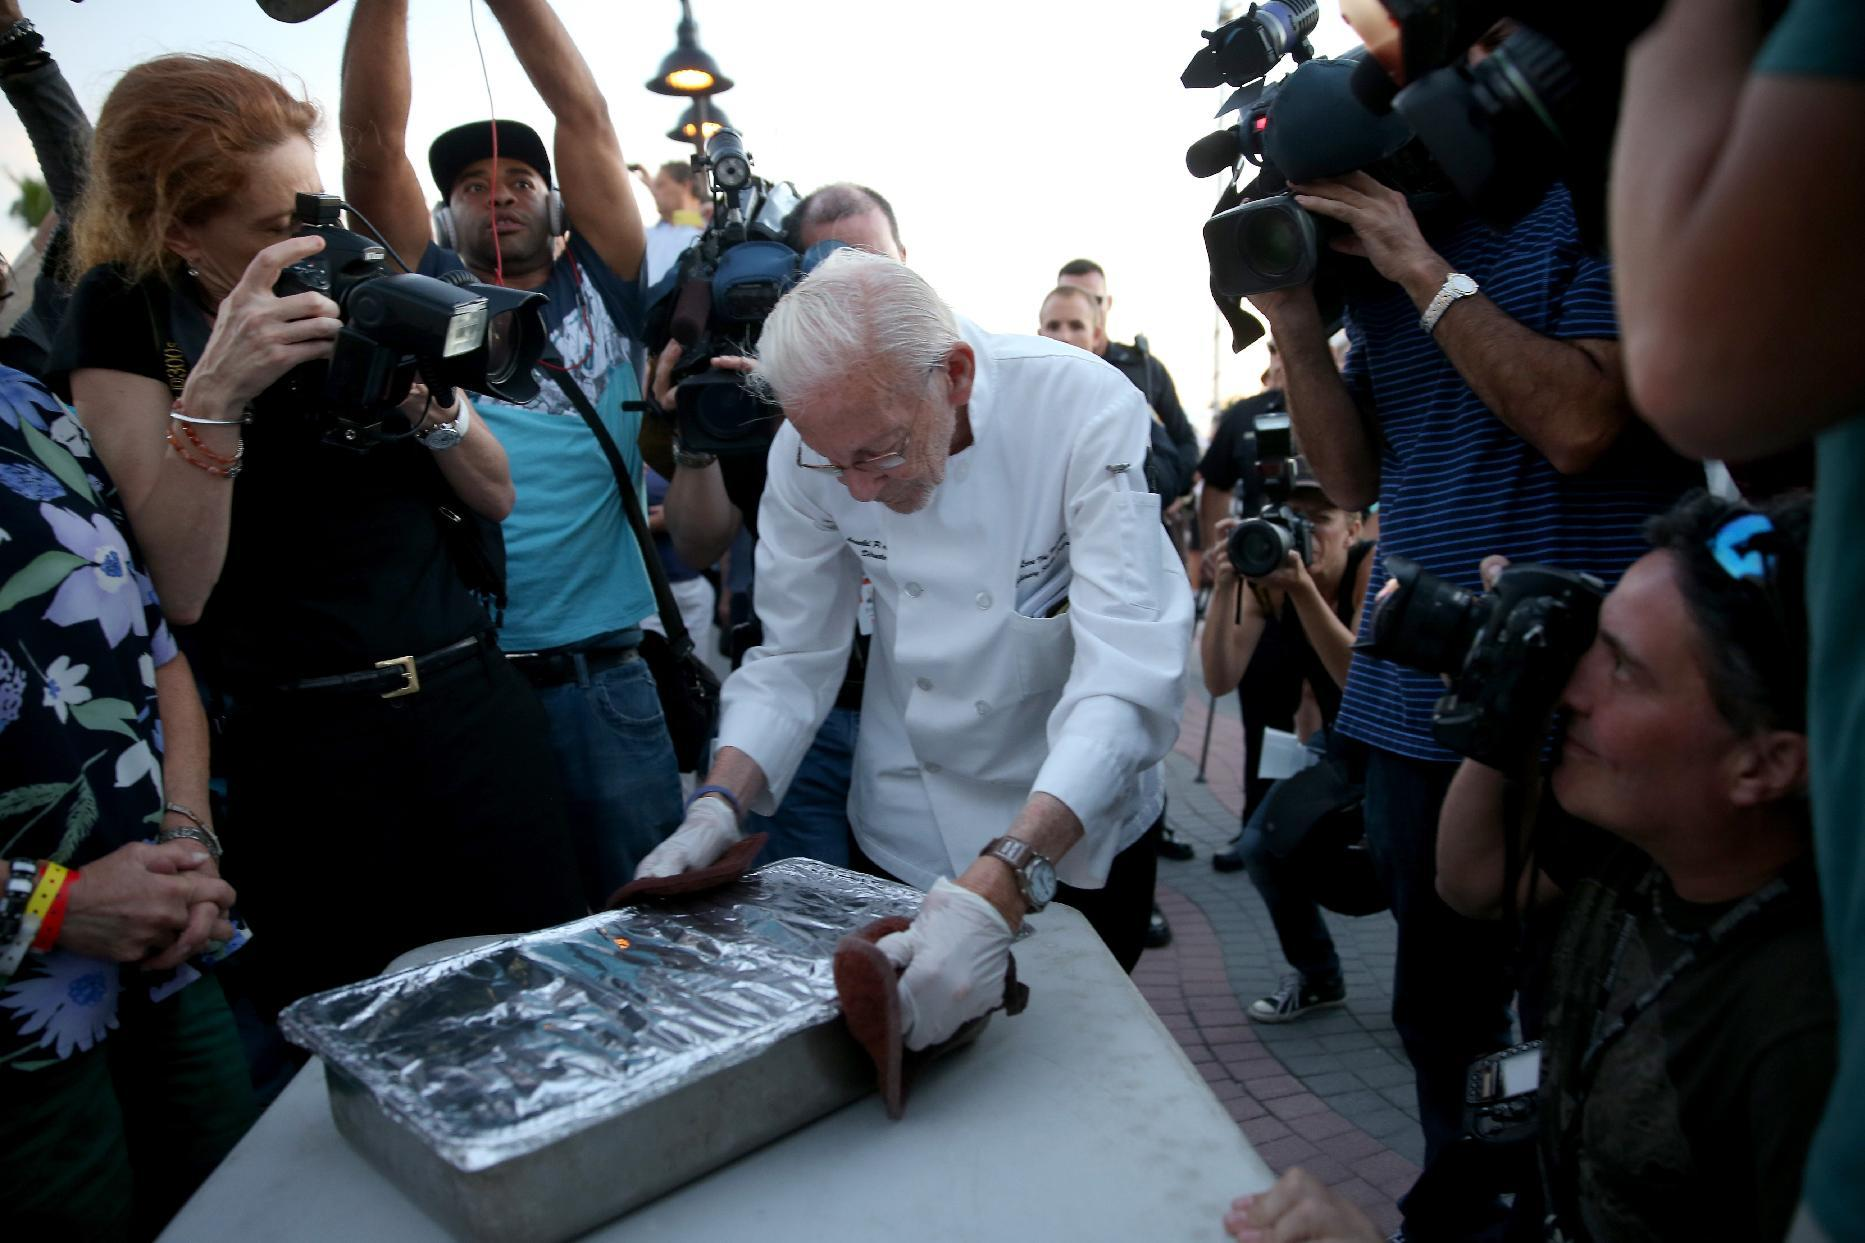 Arnold Abbott, a 90-year-old chef, is surrounded by media as he prepares to feed the homeless in Fort Lauderdale, Florida, on November 12, 2014